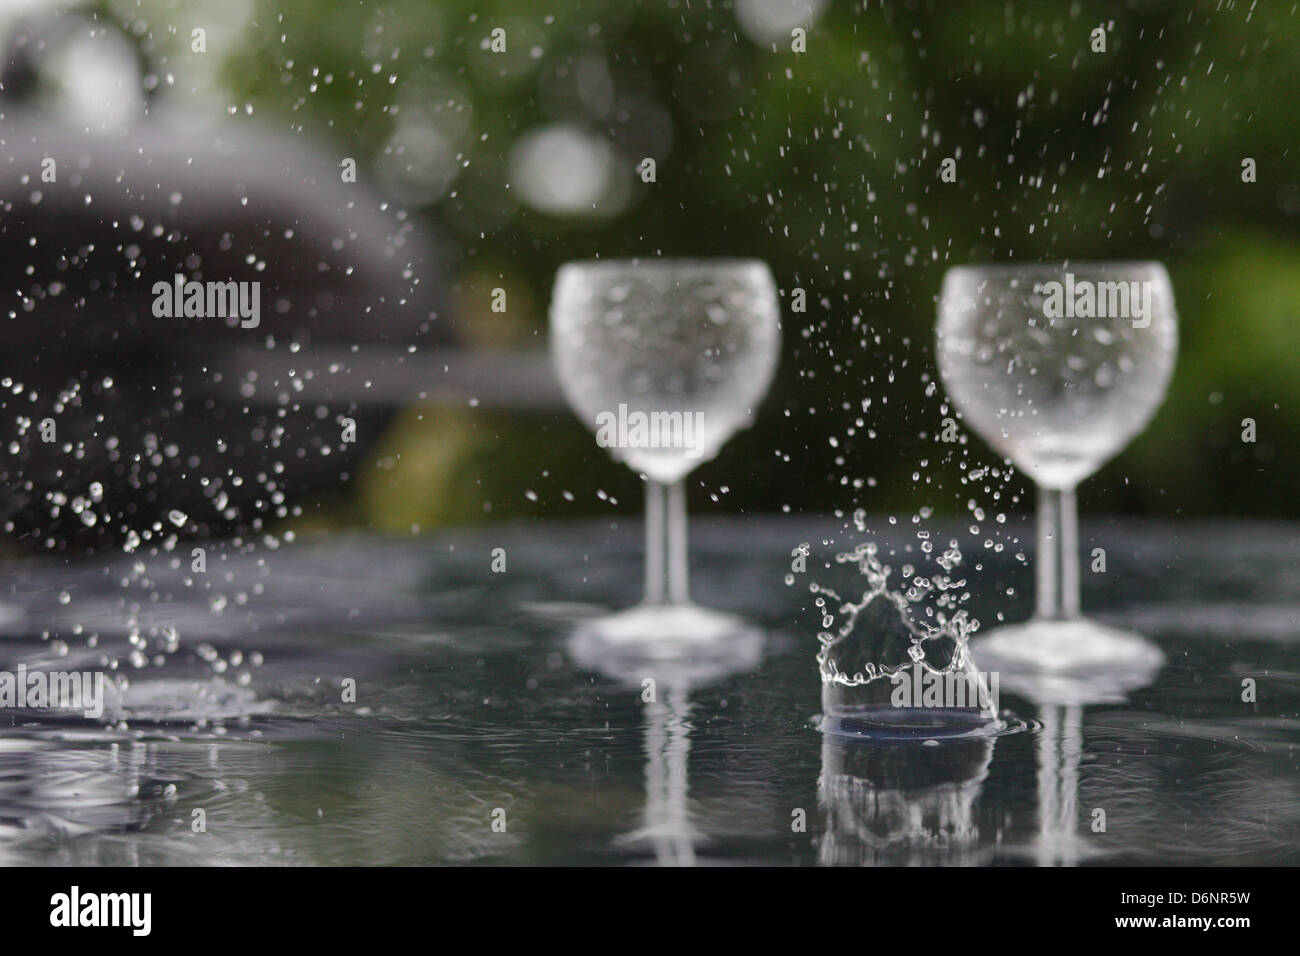 Le Barcares, France, forgotten in the rain wine glasses on a table - Stock Image